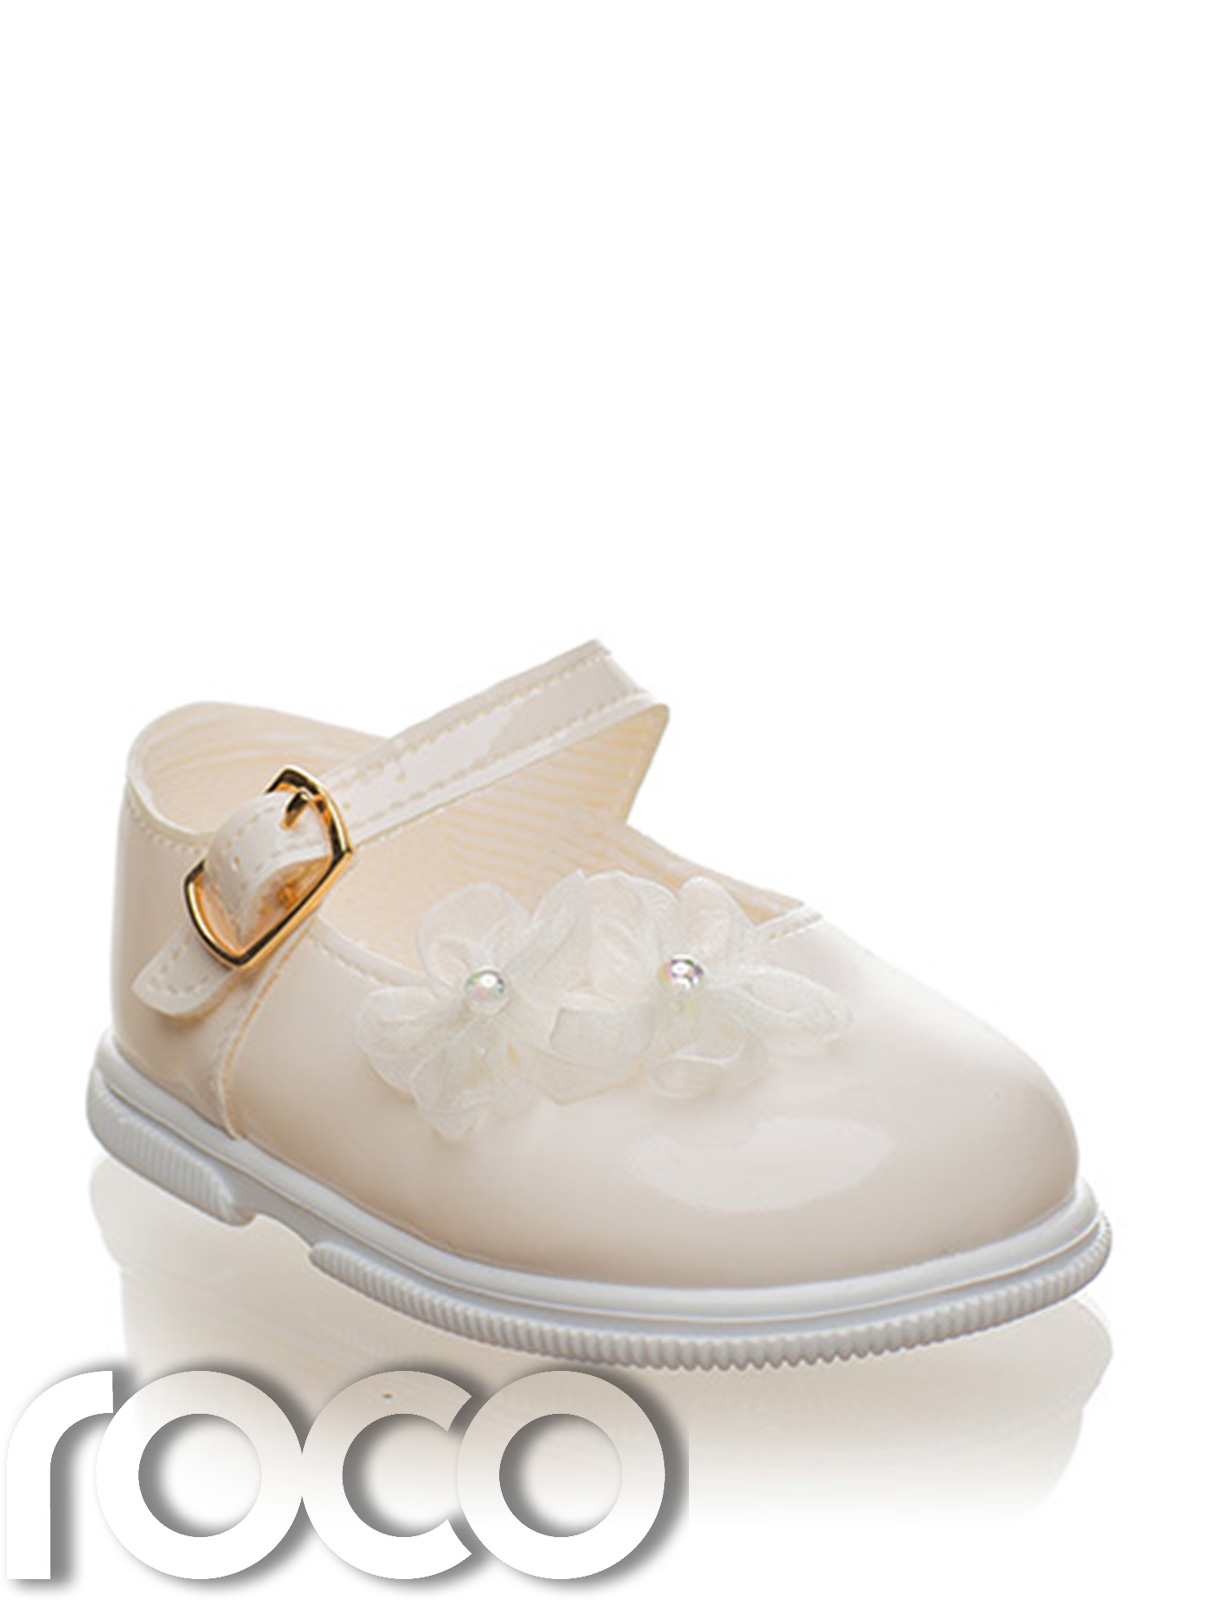 Girls Ivory Shoes Girls Bridesmaid Shoes Ivory Flower Girl ...